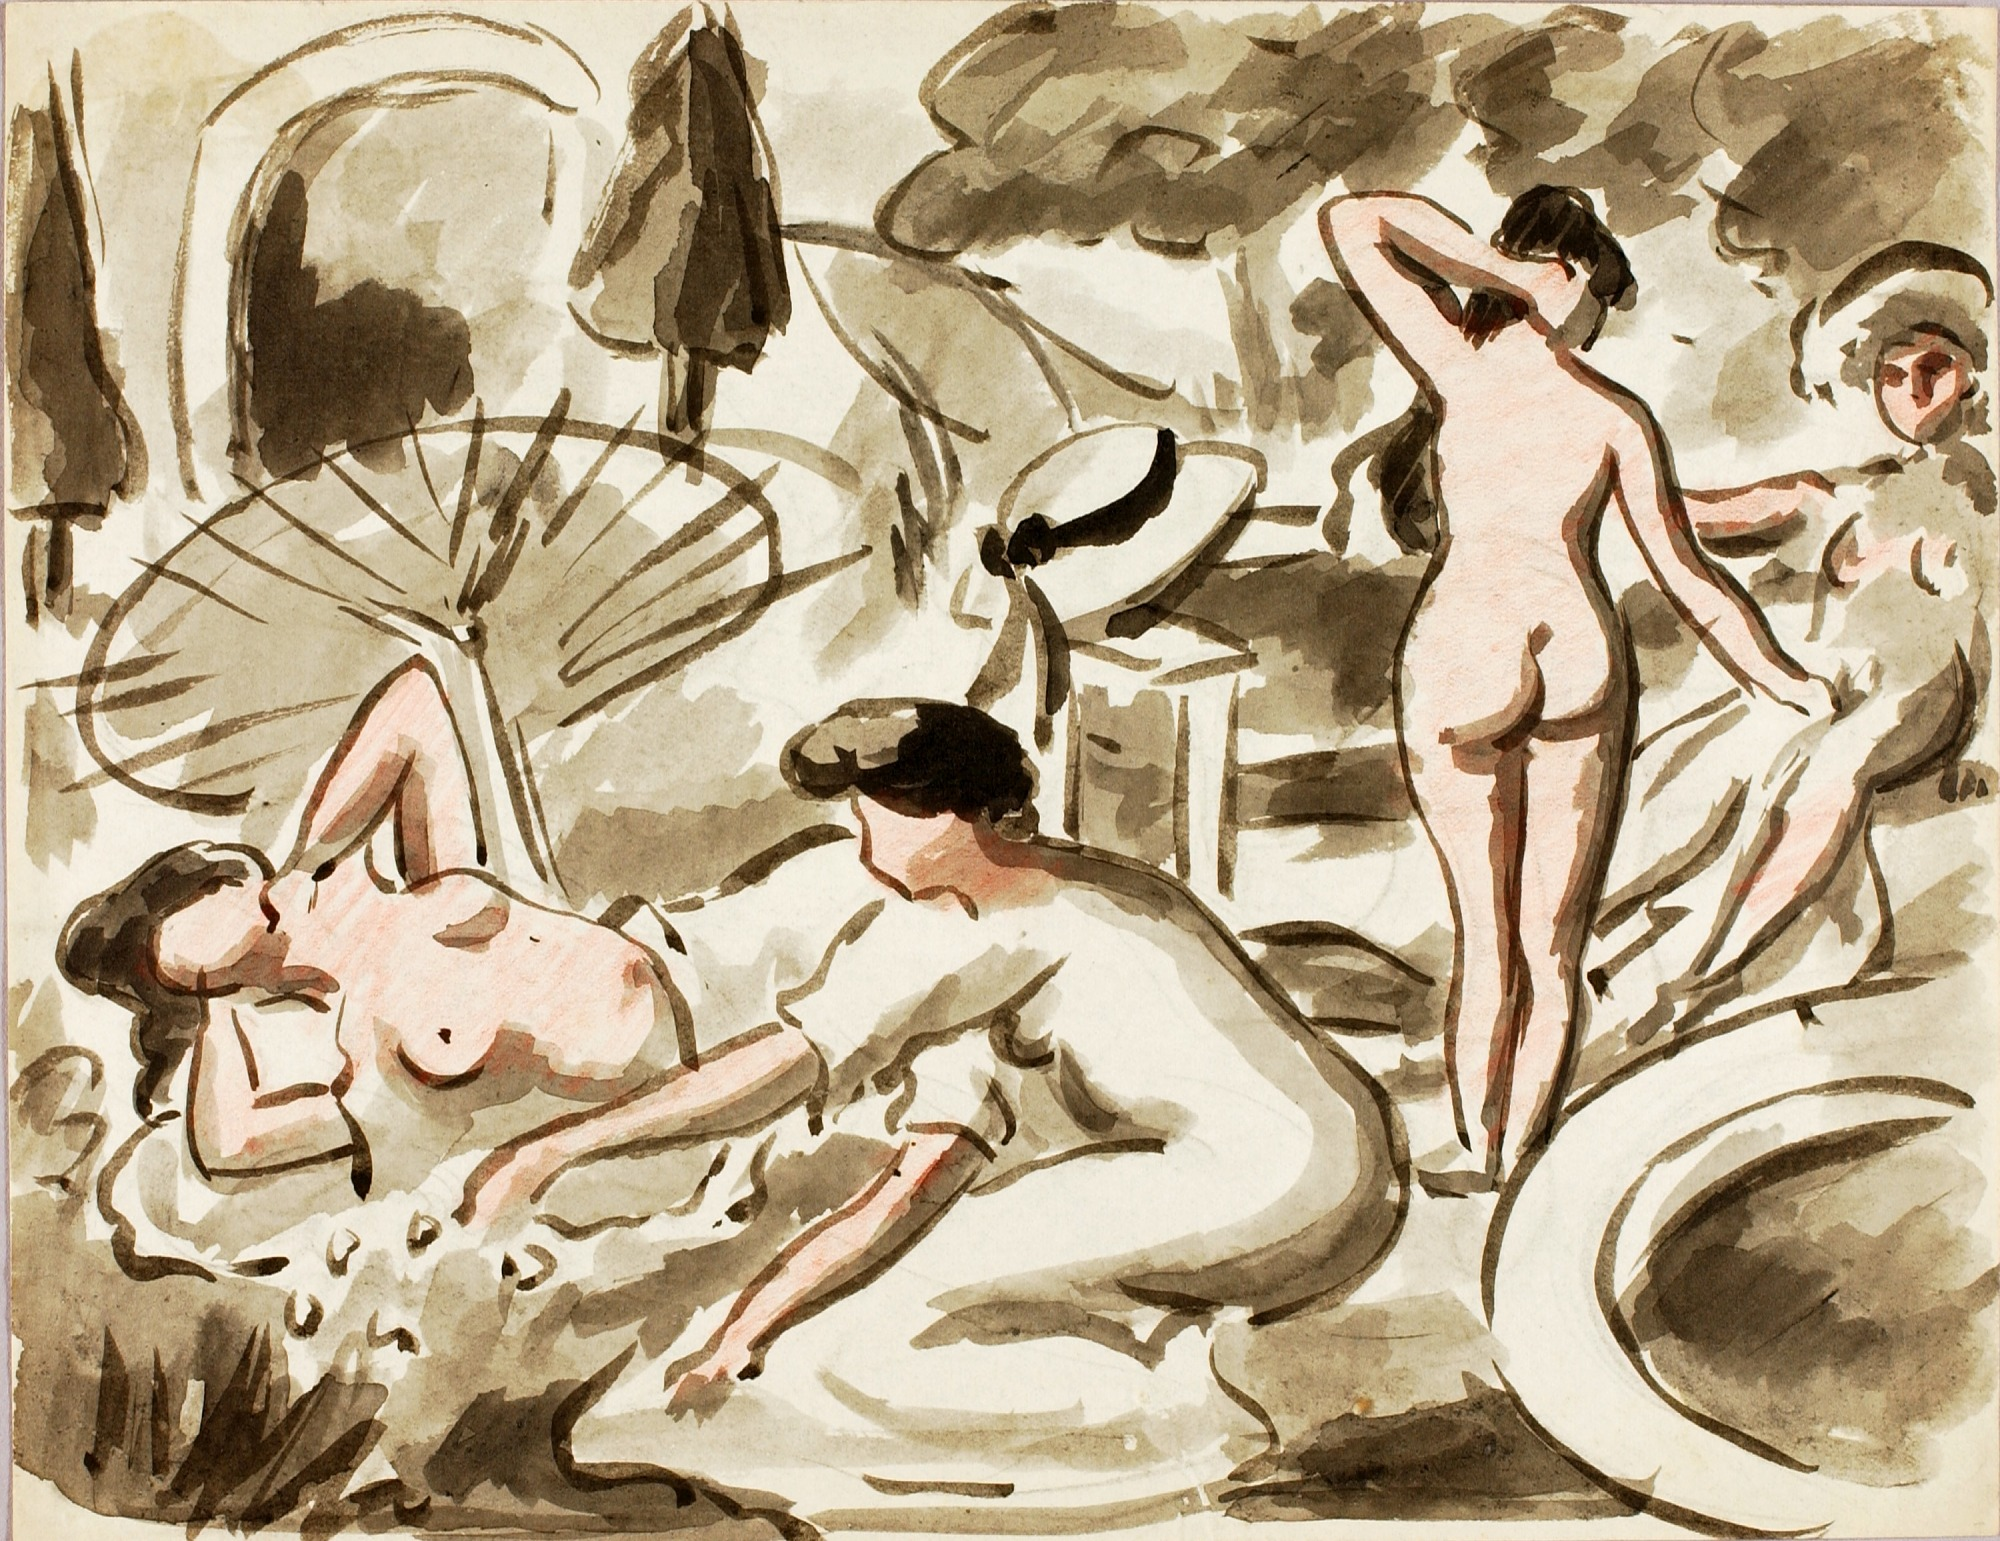 Group of Nude and Semi-Nude Women